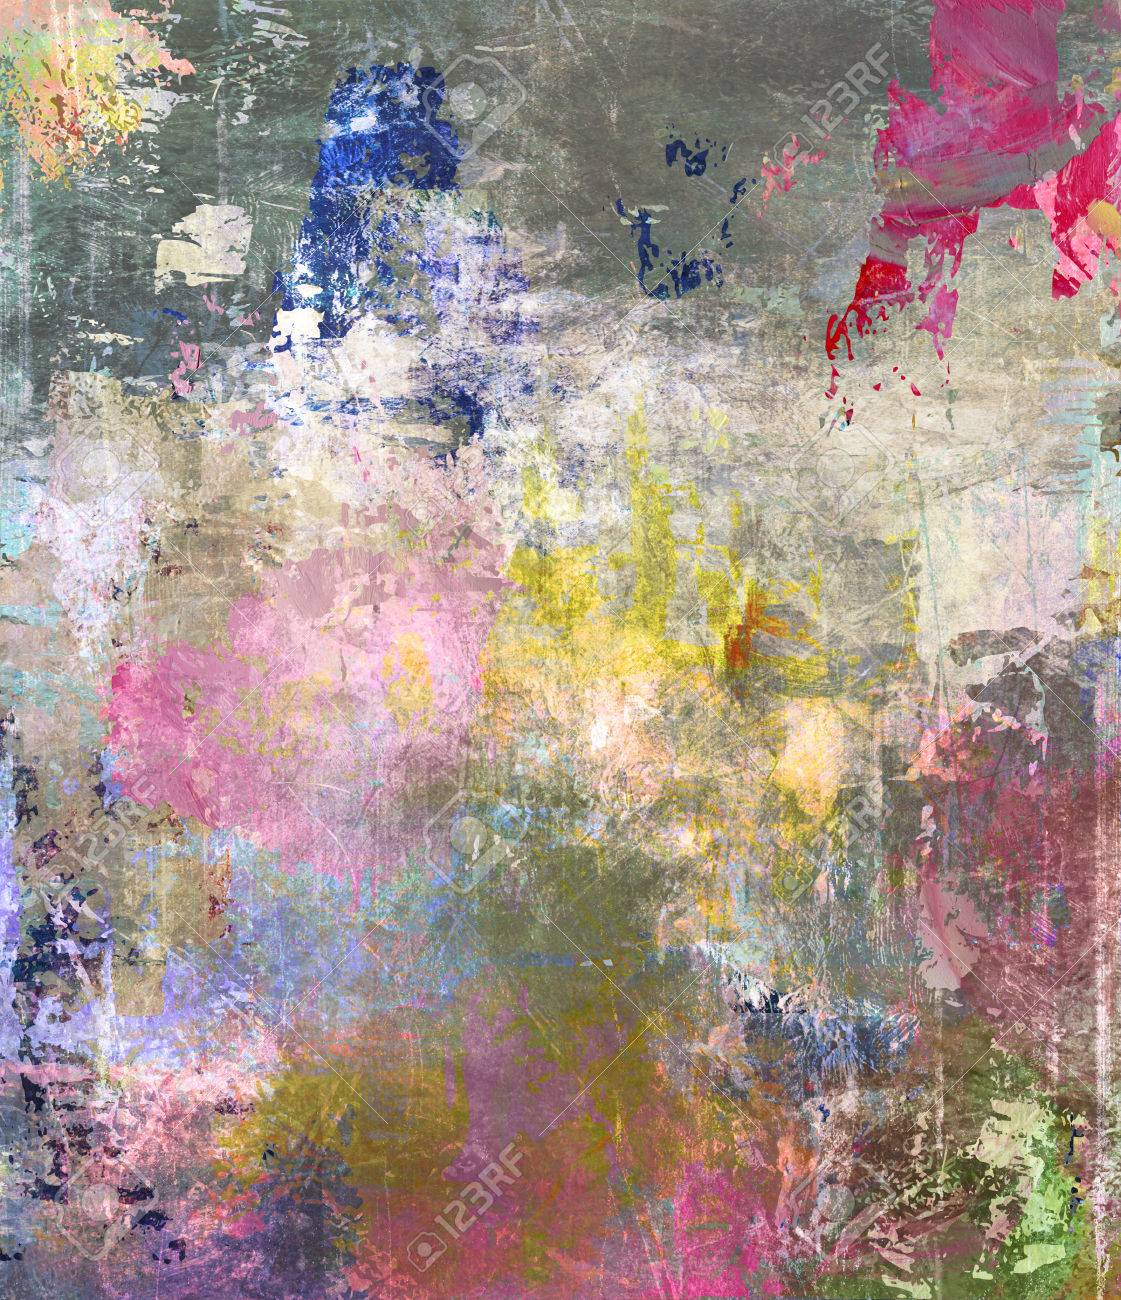 Abstract Mixed Media Created By Combining Different Layers Stock